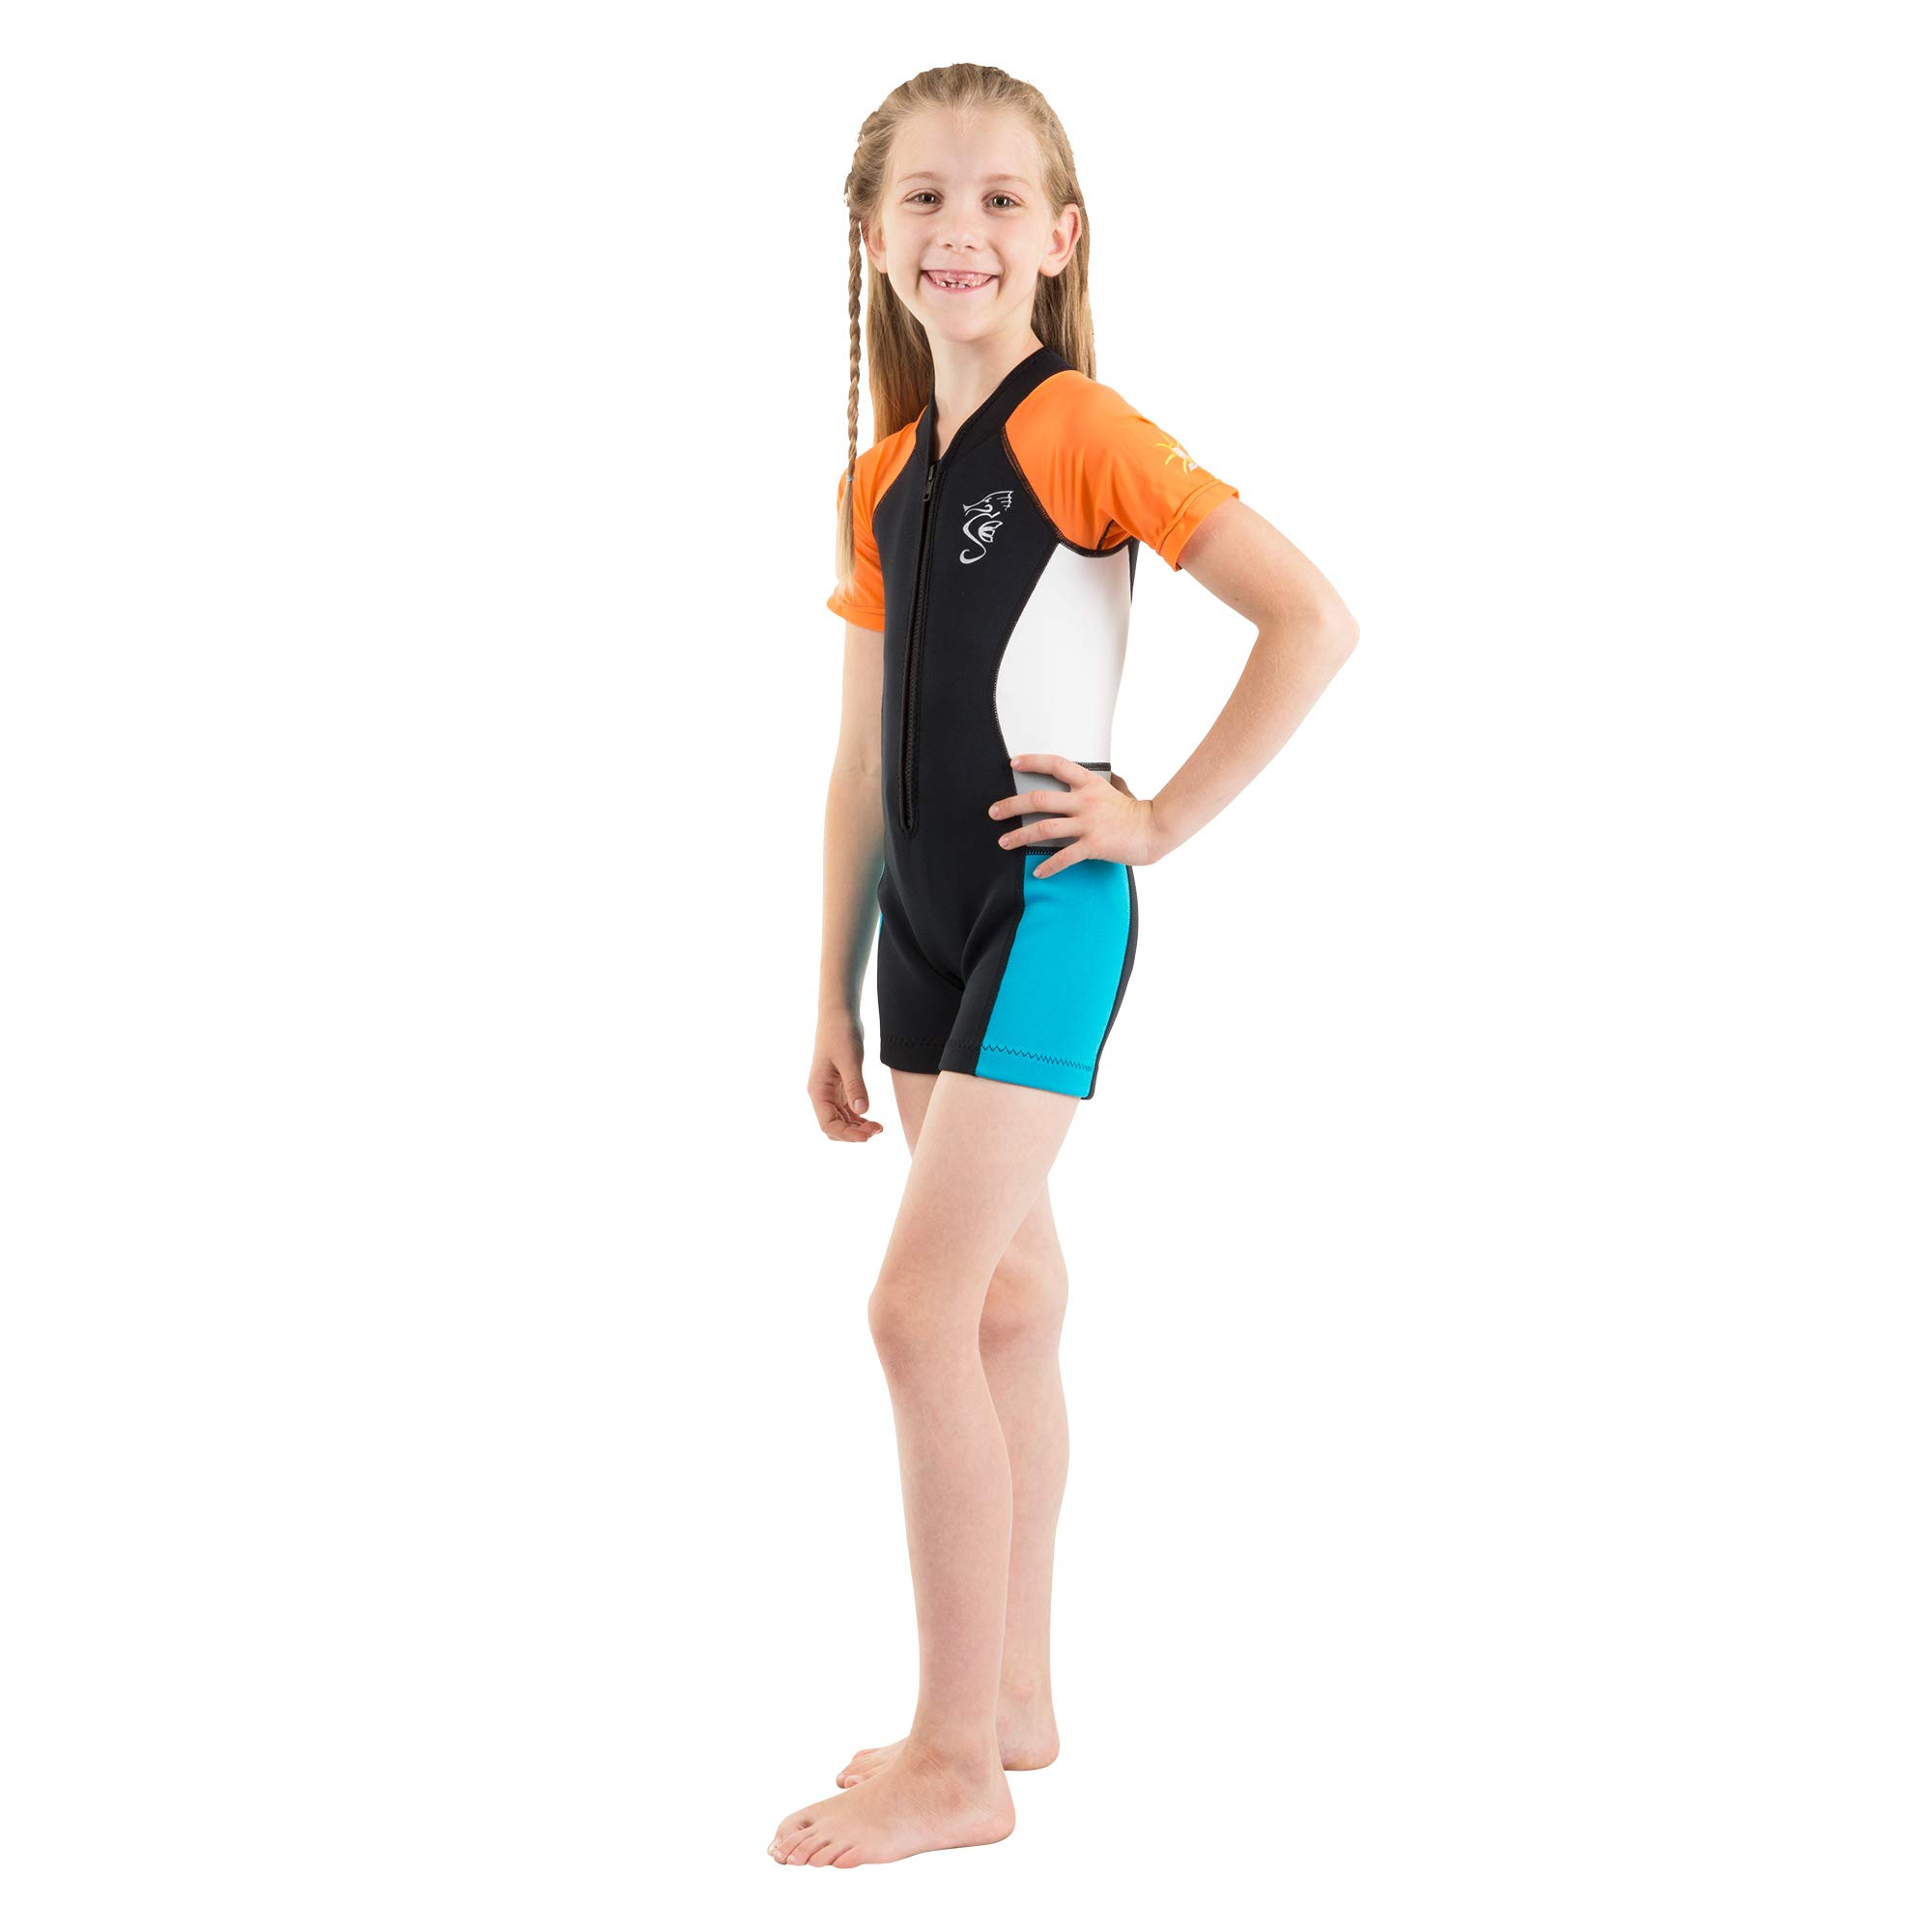 Seavenger Cadet 2mm Kids Shorty | Child Neoprene Wetsuit for Snorkeling, Surfing and Swimming (Orange, 2T) by Seavenger